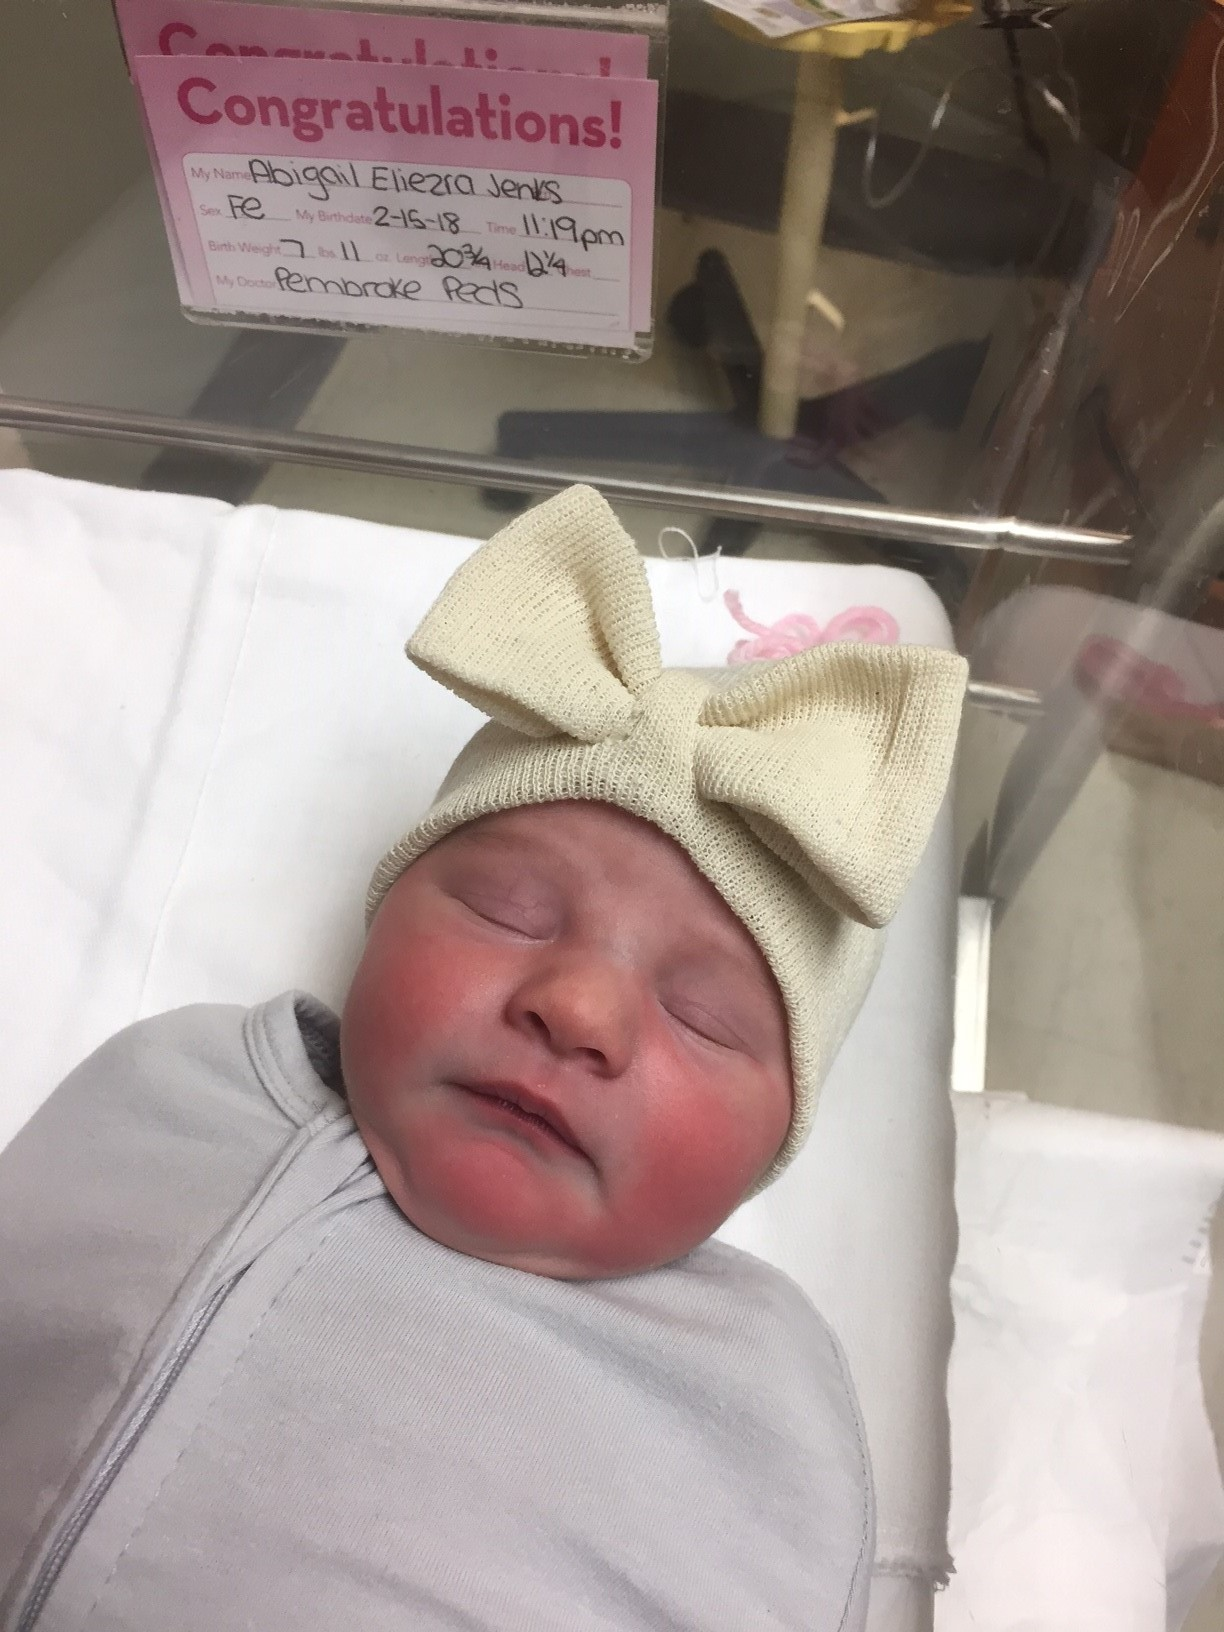 Update: Welcome Abigail Eliezra Jenks - On February 15, 2018 Abigail was born, and on February 16 we welcomed her into our family.The years of waiting, believing, and trusting for God to bring children to our family, have given way to euphoric joy and gratefulness to the Lord as we celebrate the arrival of this precious promise.Thank you for all who have been praying and believing with us on this journey!- Stephen, Veronica & Abigail